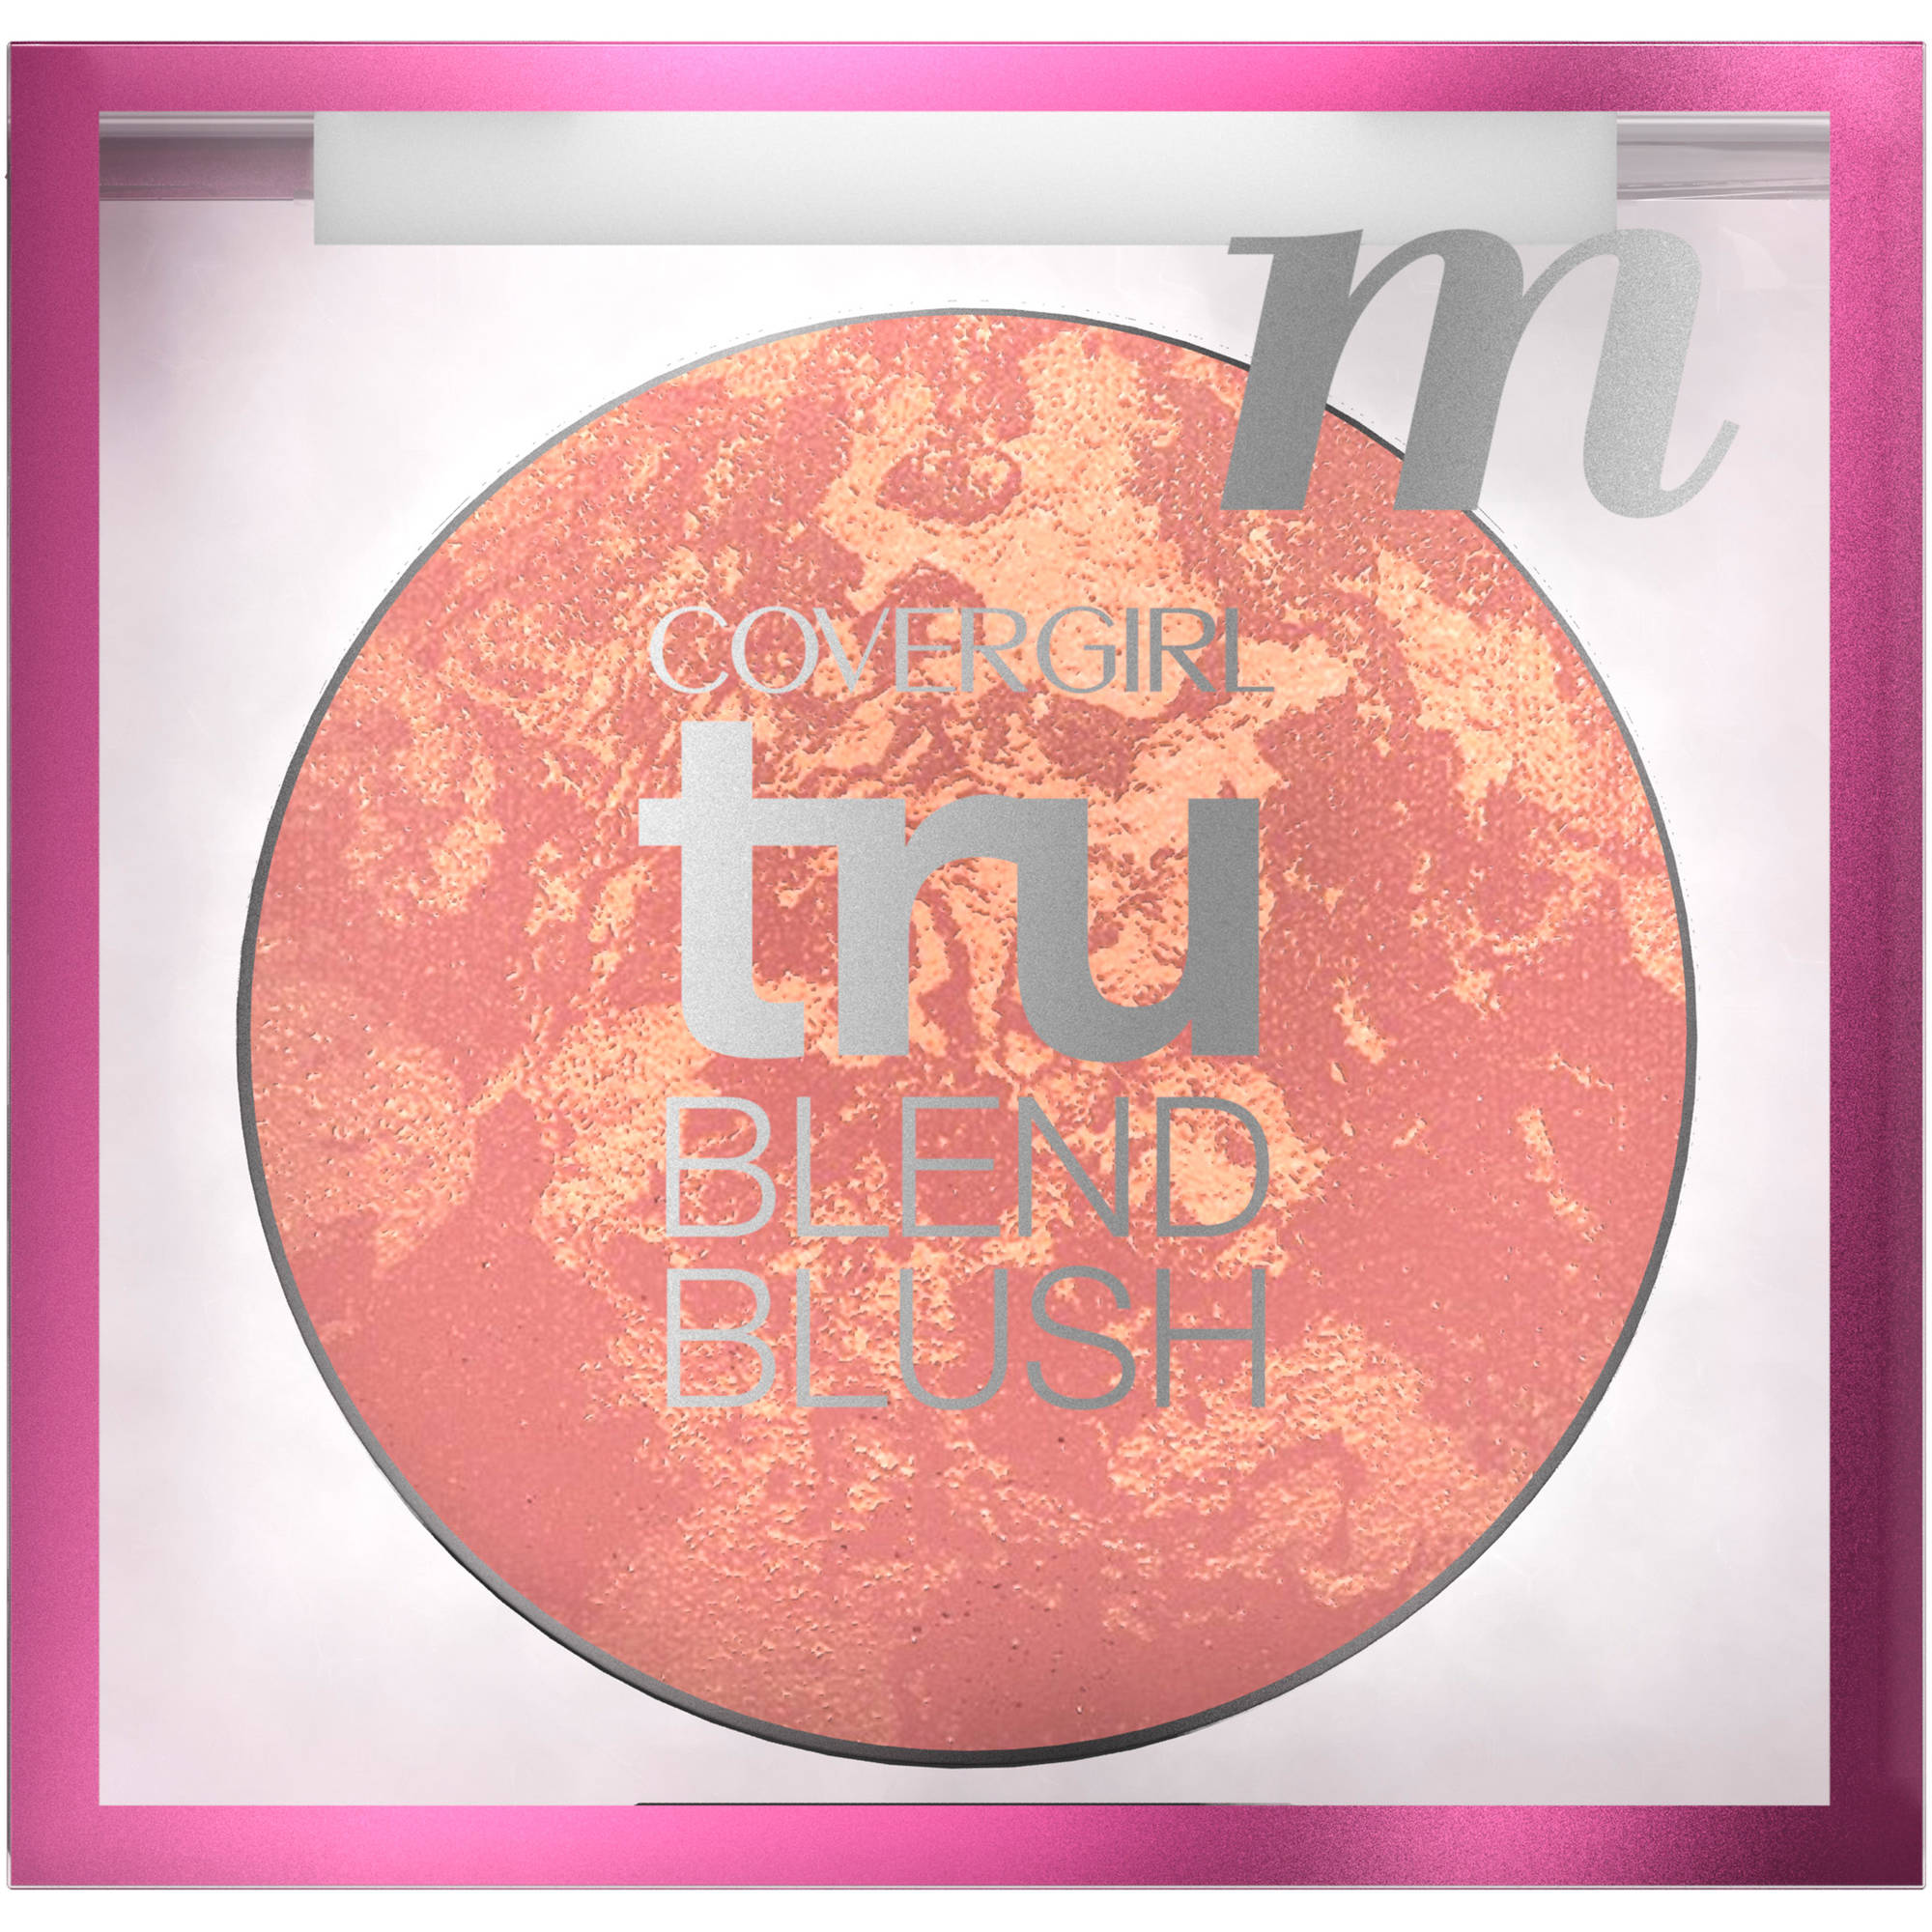 COVERGIRL truBlend Baked Powder Blush, Medium Rose, .1 oz